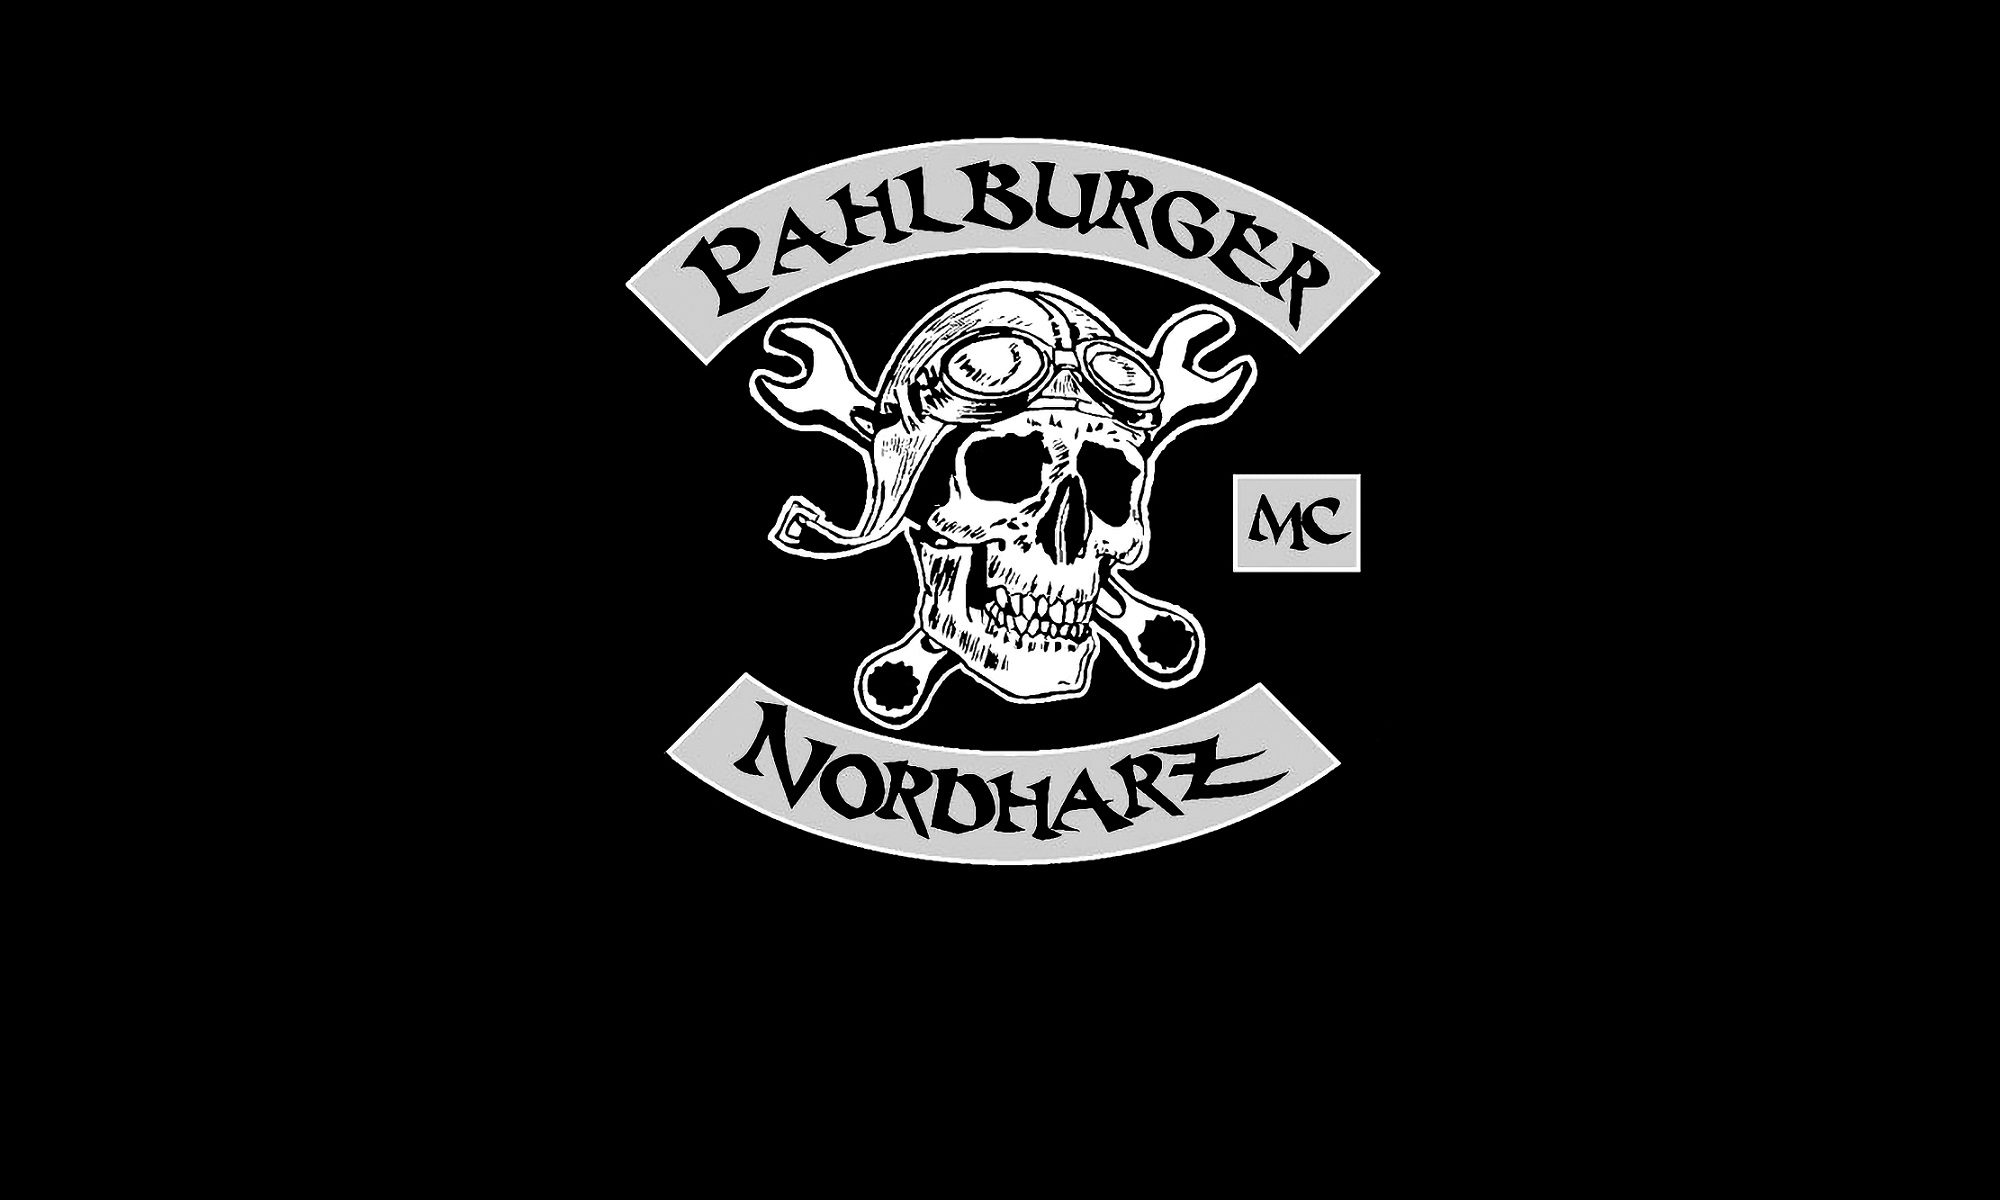 Pahlburger MC Nordharz